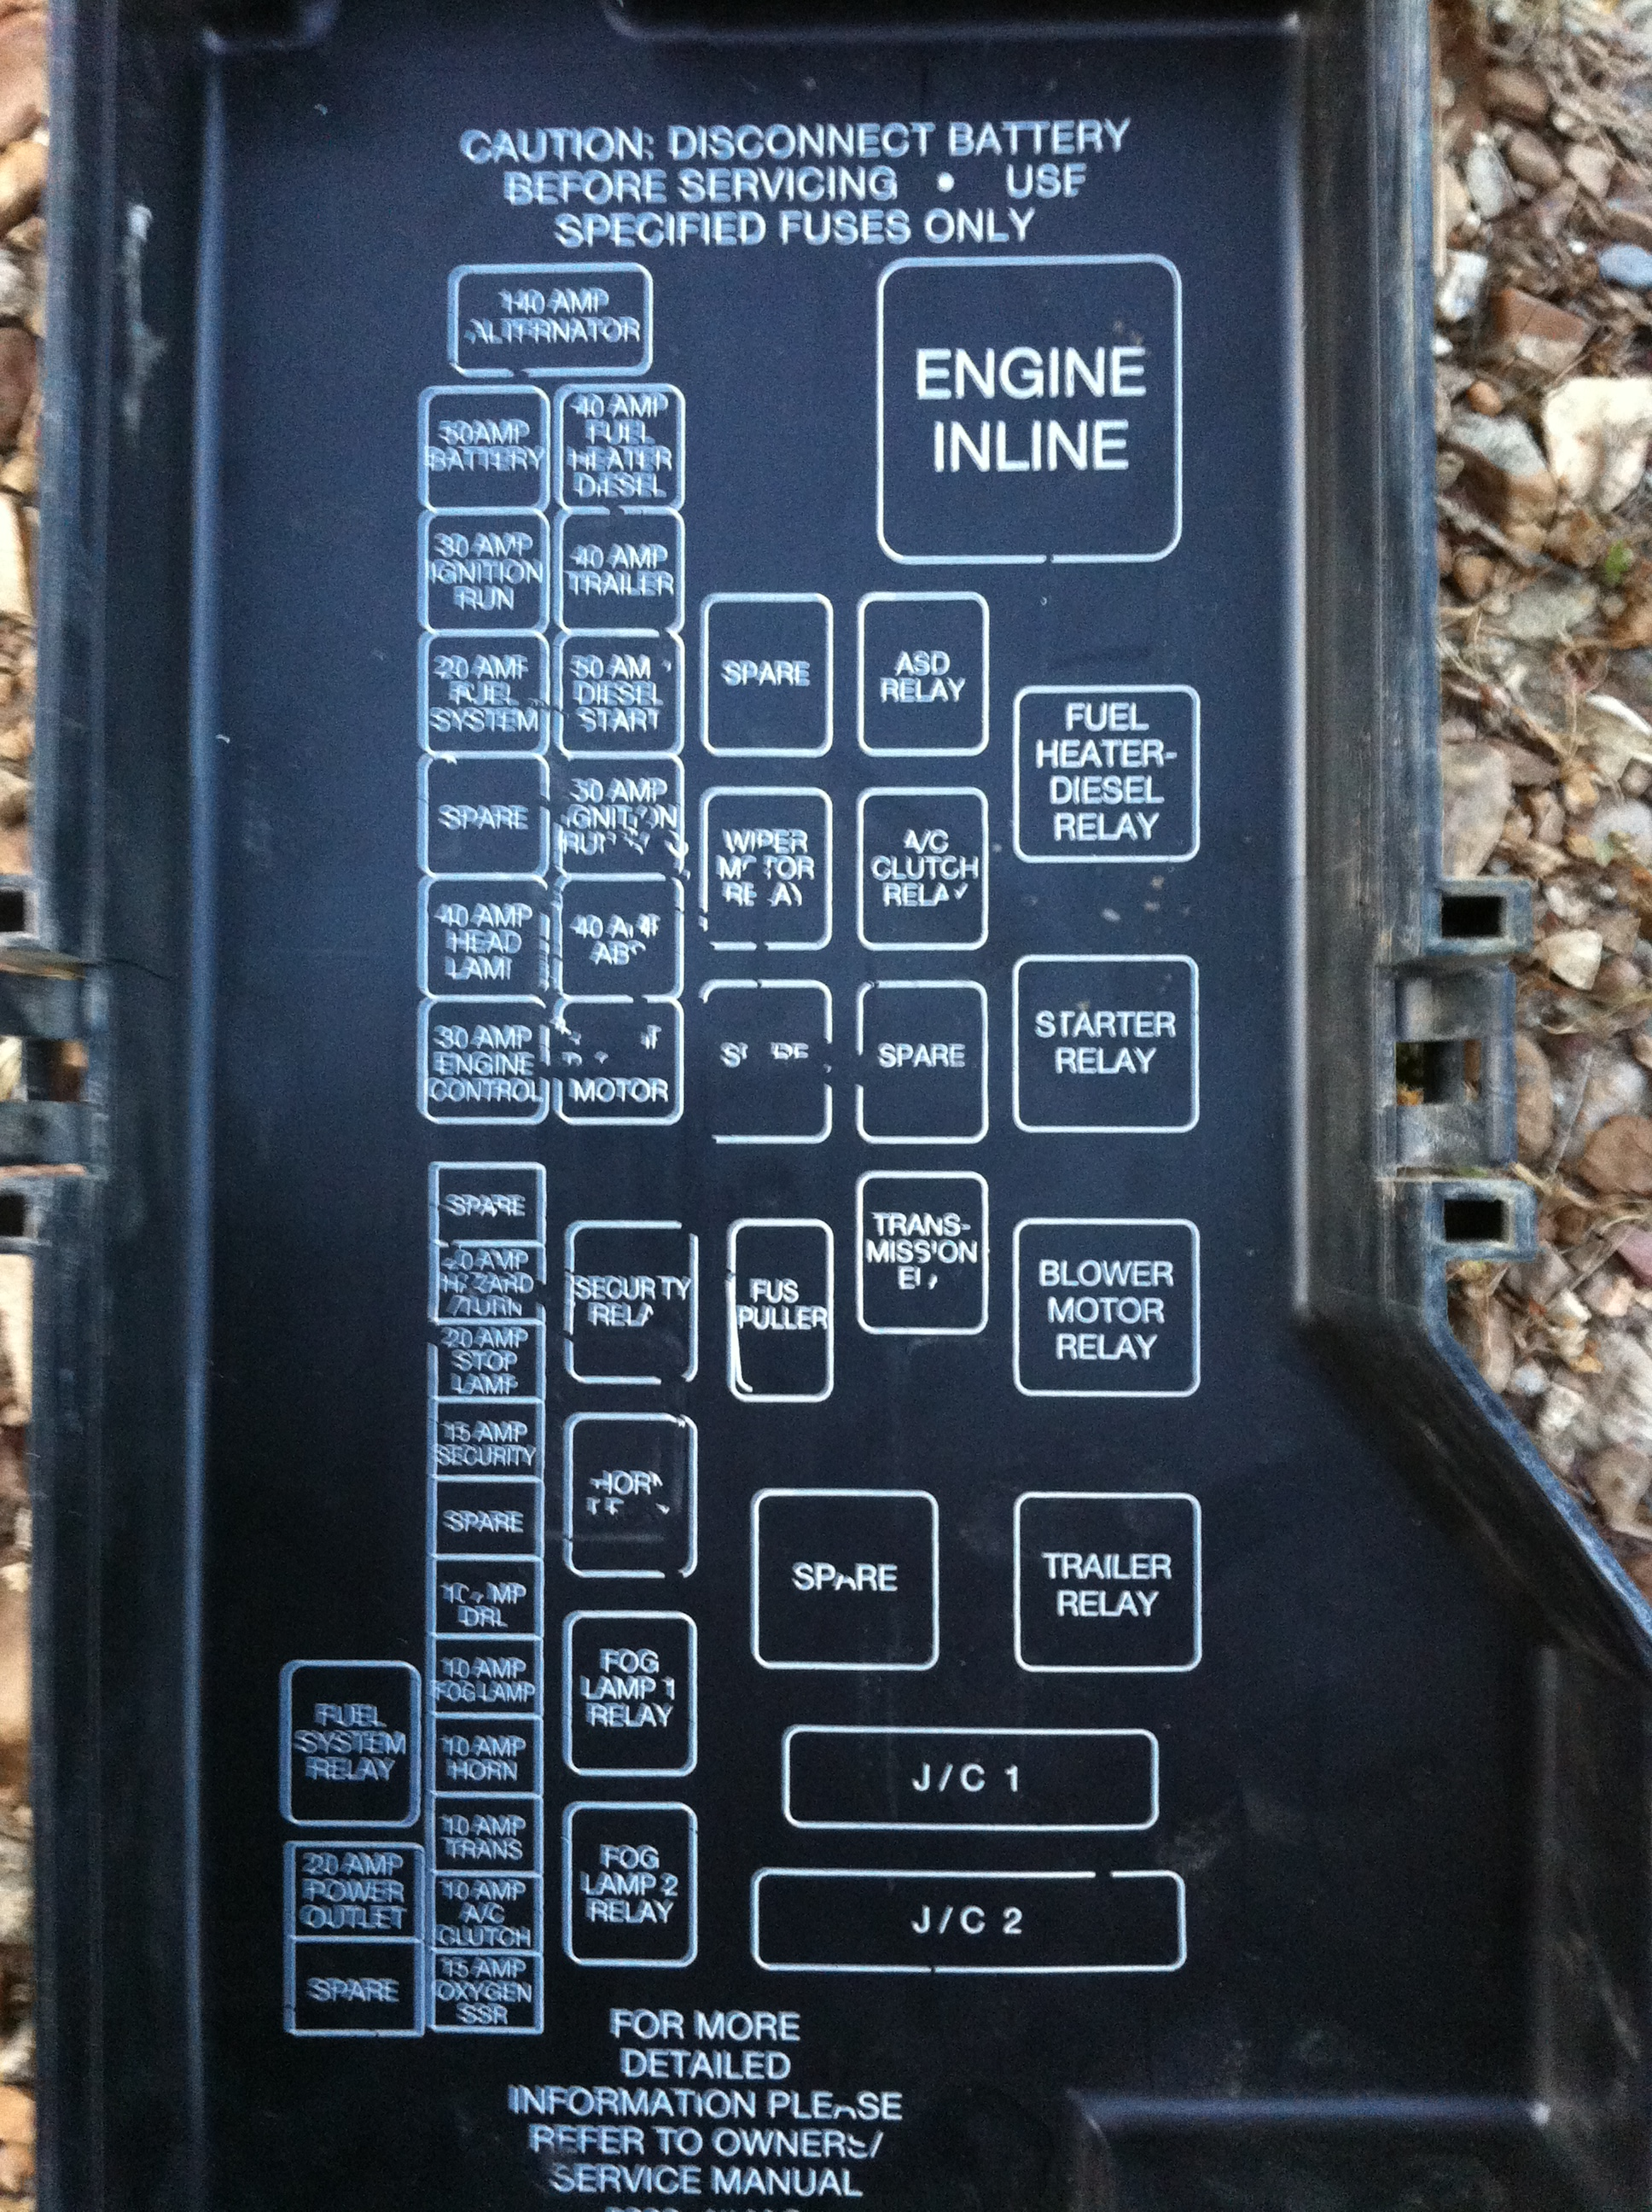 2012 05 22_134436_006 i have a 98 ram 2500 with cummins engine, when i turn the key to 2012 dodge ram fuse box diagram at creativeand.co